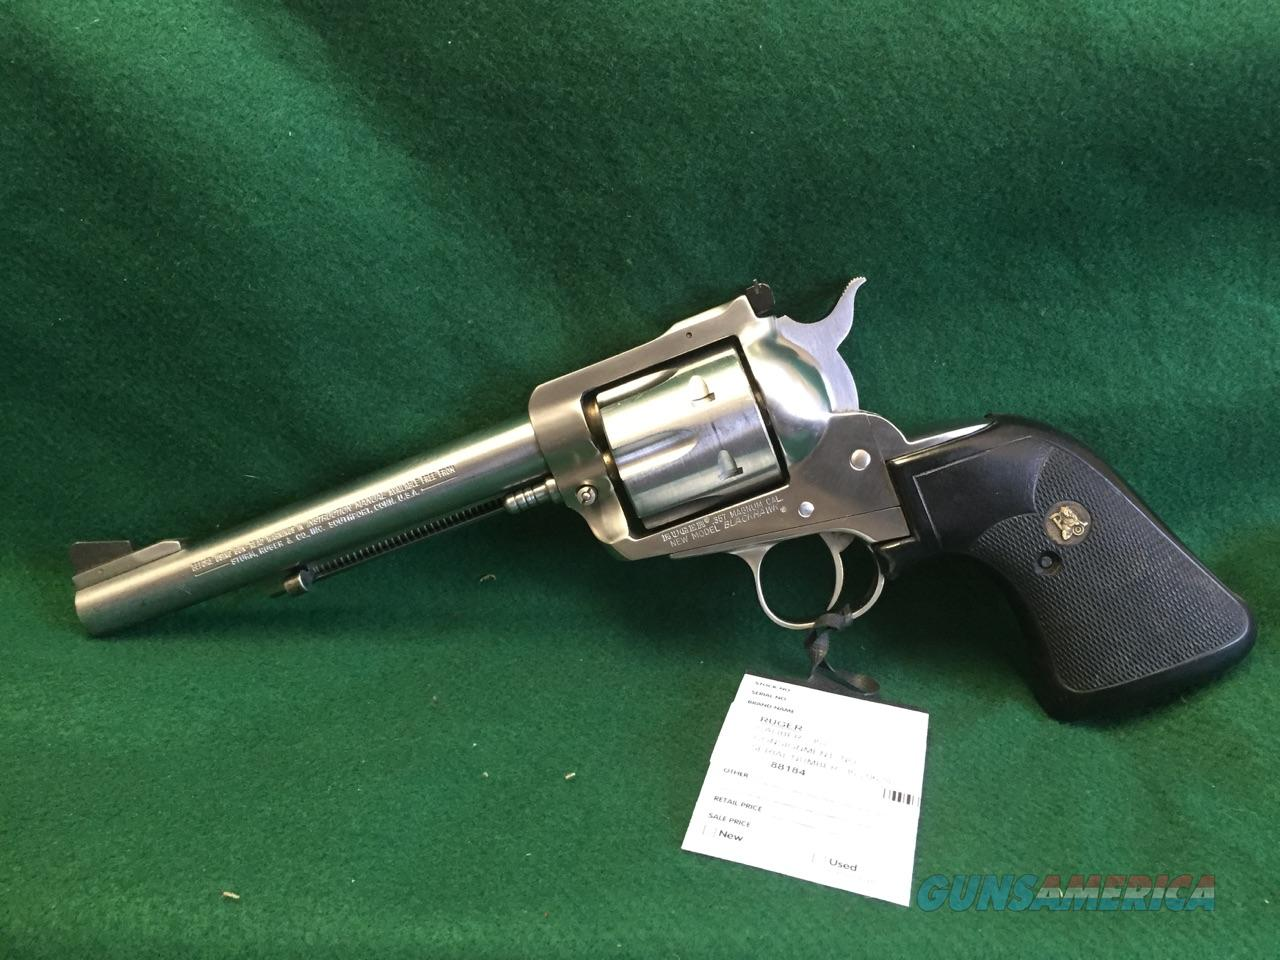 Ruger New Model Blackhawk  Guns > Pistols > Ruger Single Action Revolvers > Blackhawk Type